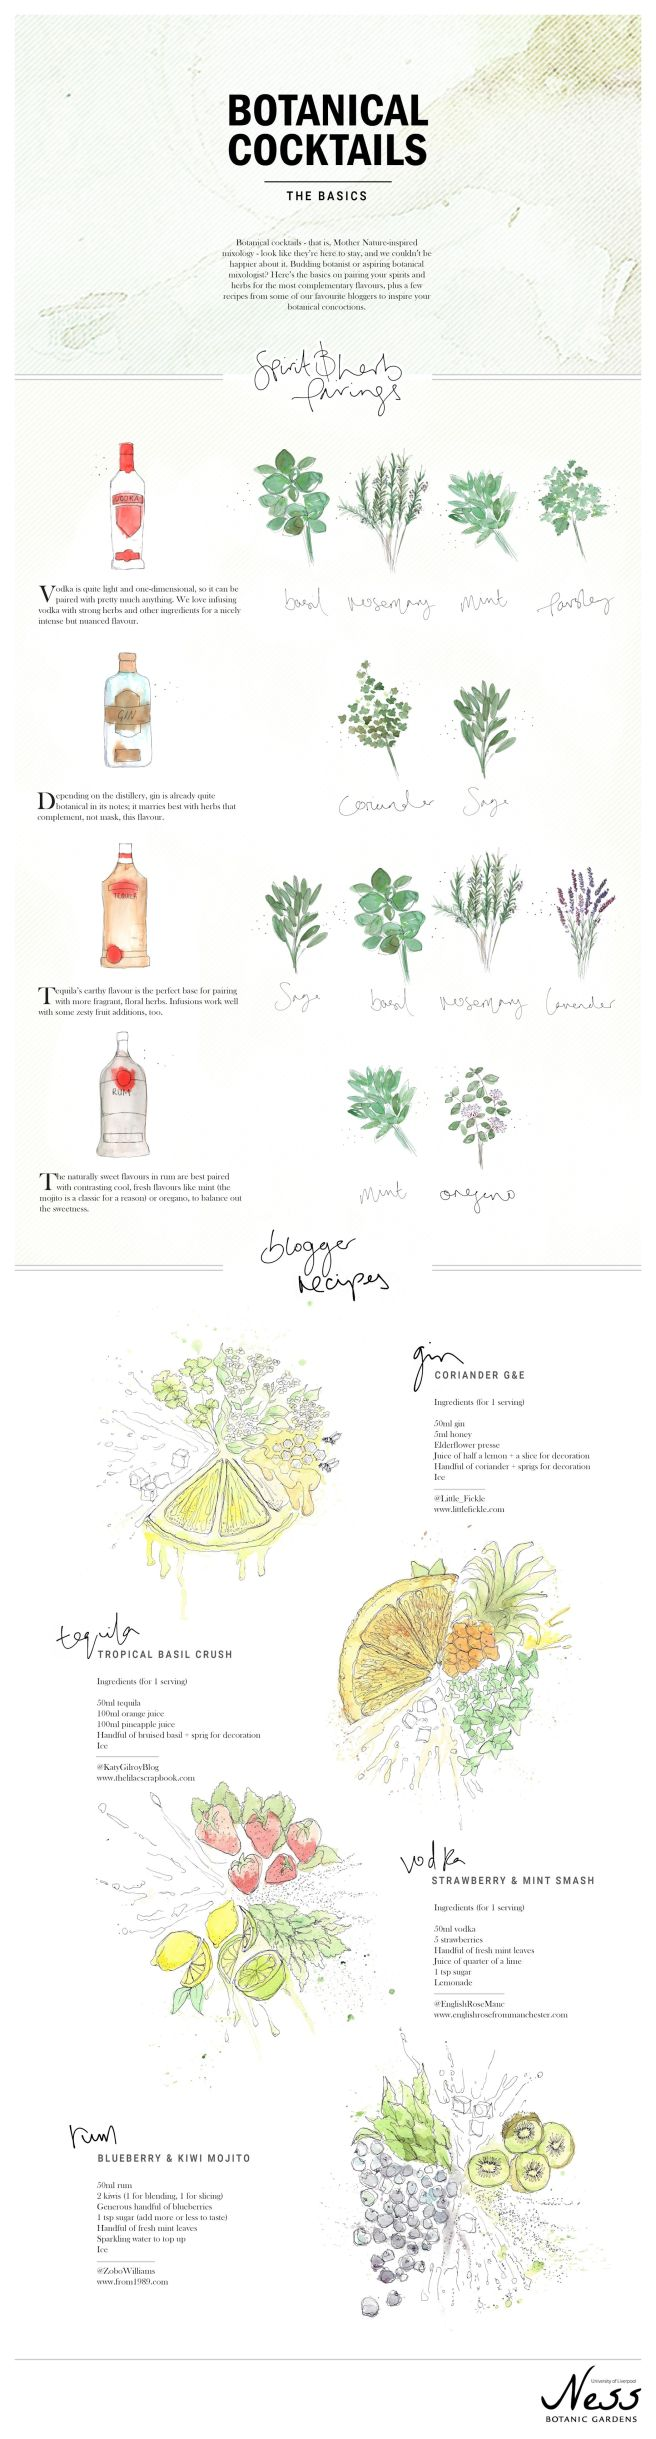 Botanical cocktail guide